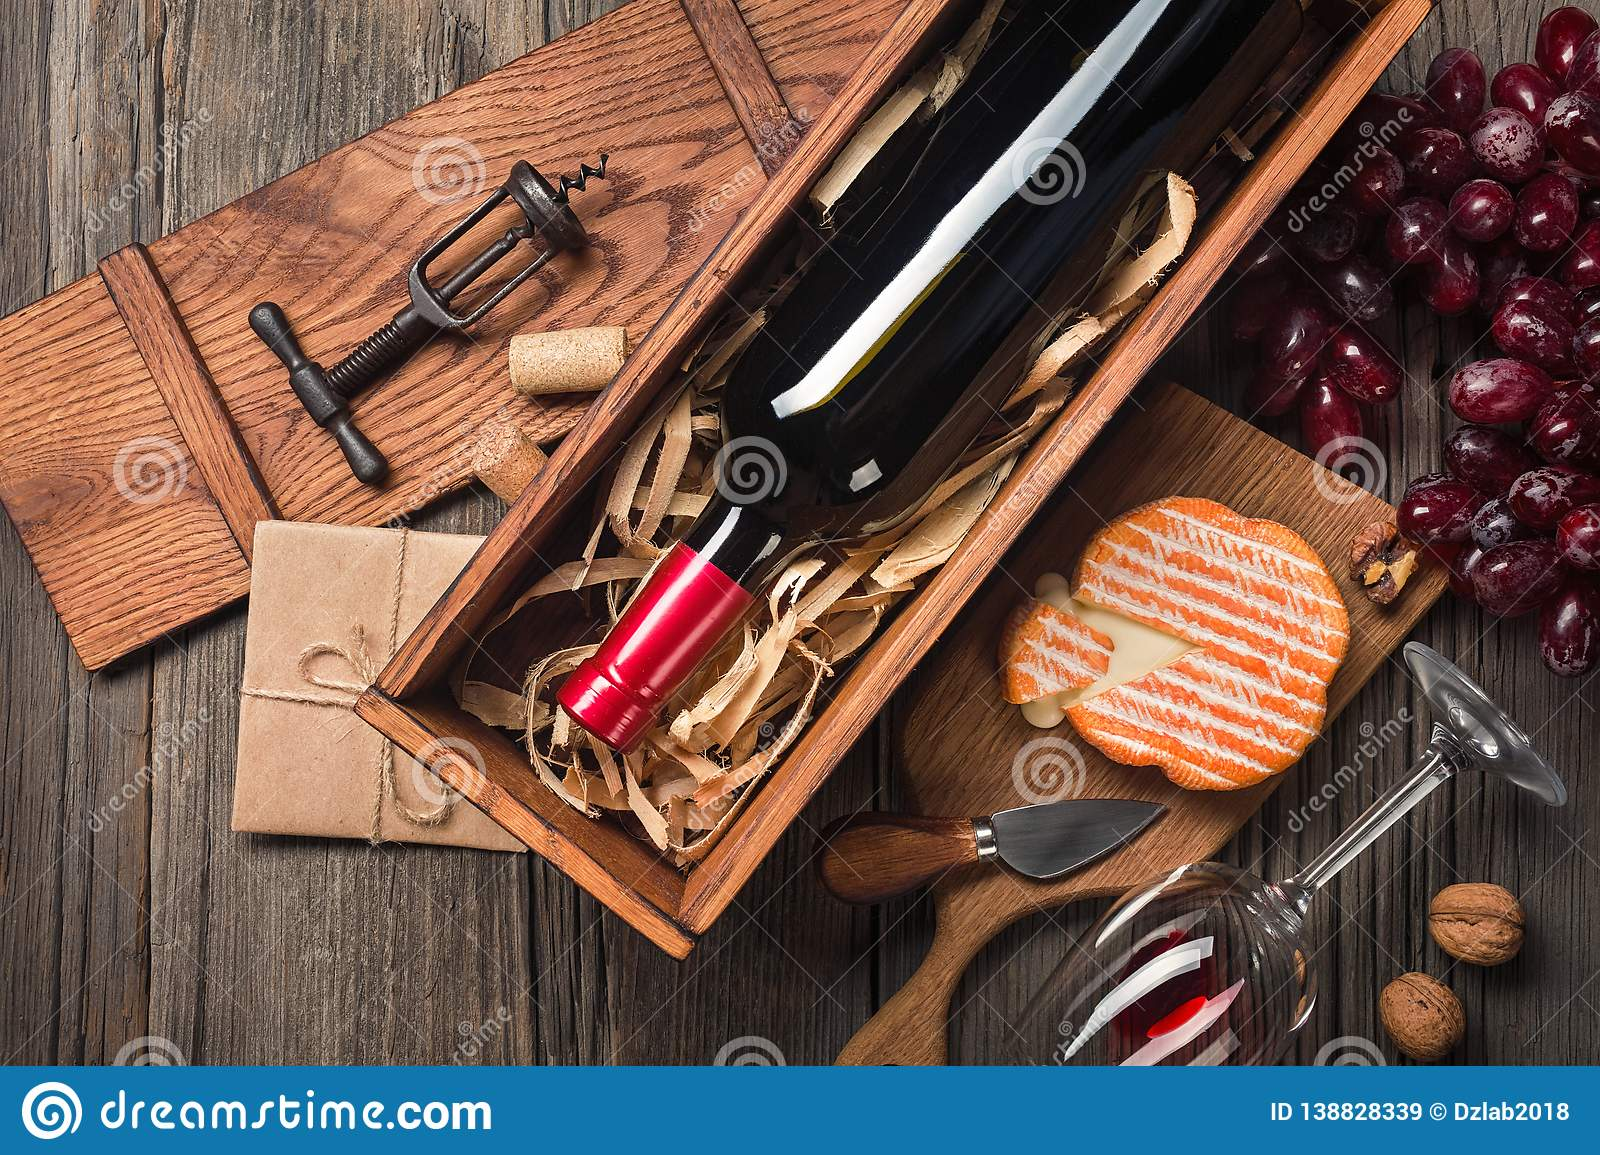 Red wine in a box with a glass, corkscrew and cream cheese on a wooden old table. Top view with space for your greetings